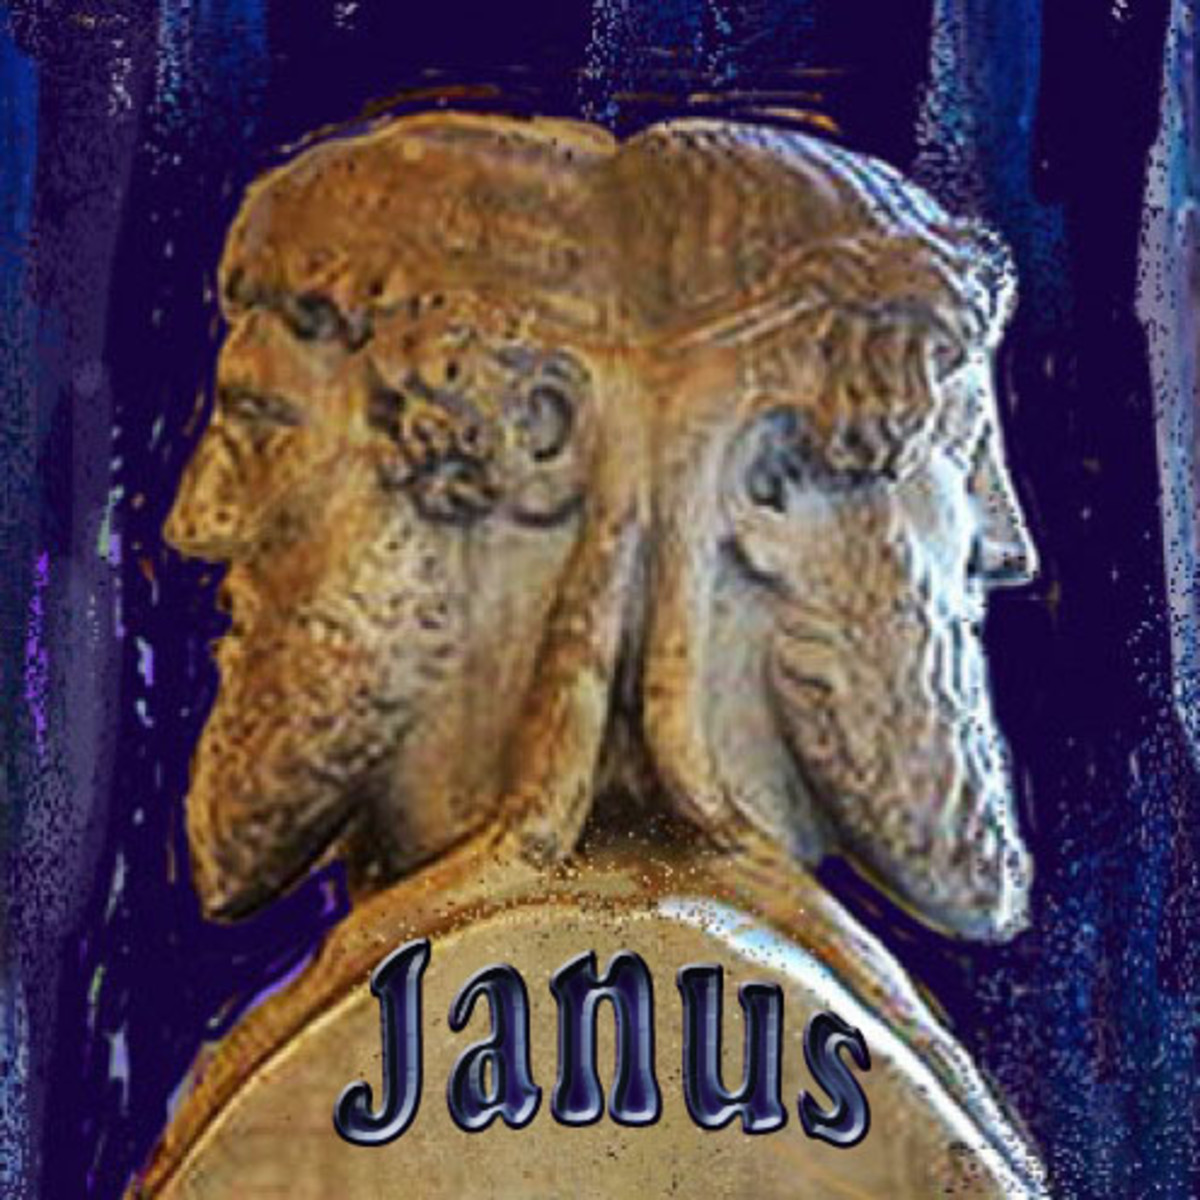 Janus - My Poem About a Two-Faced Man